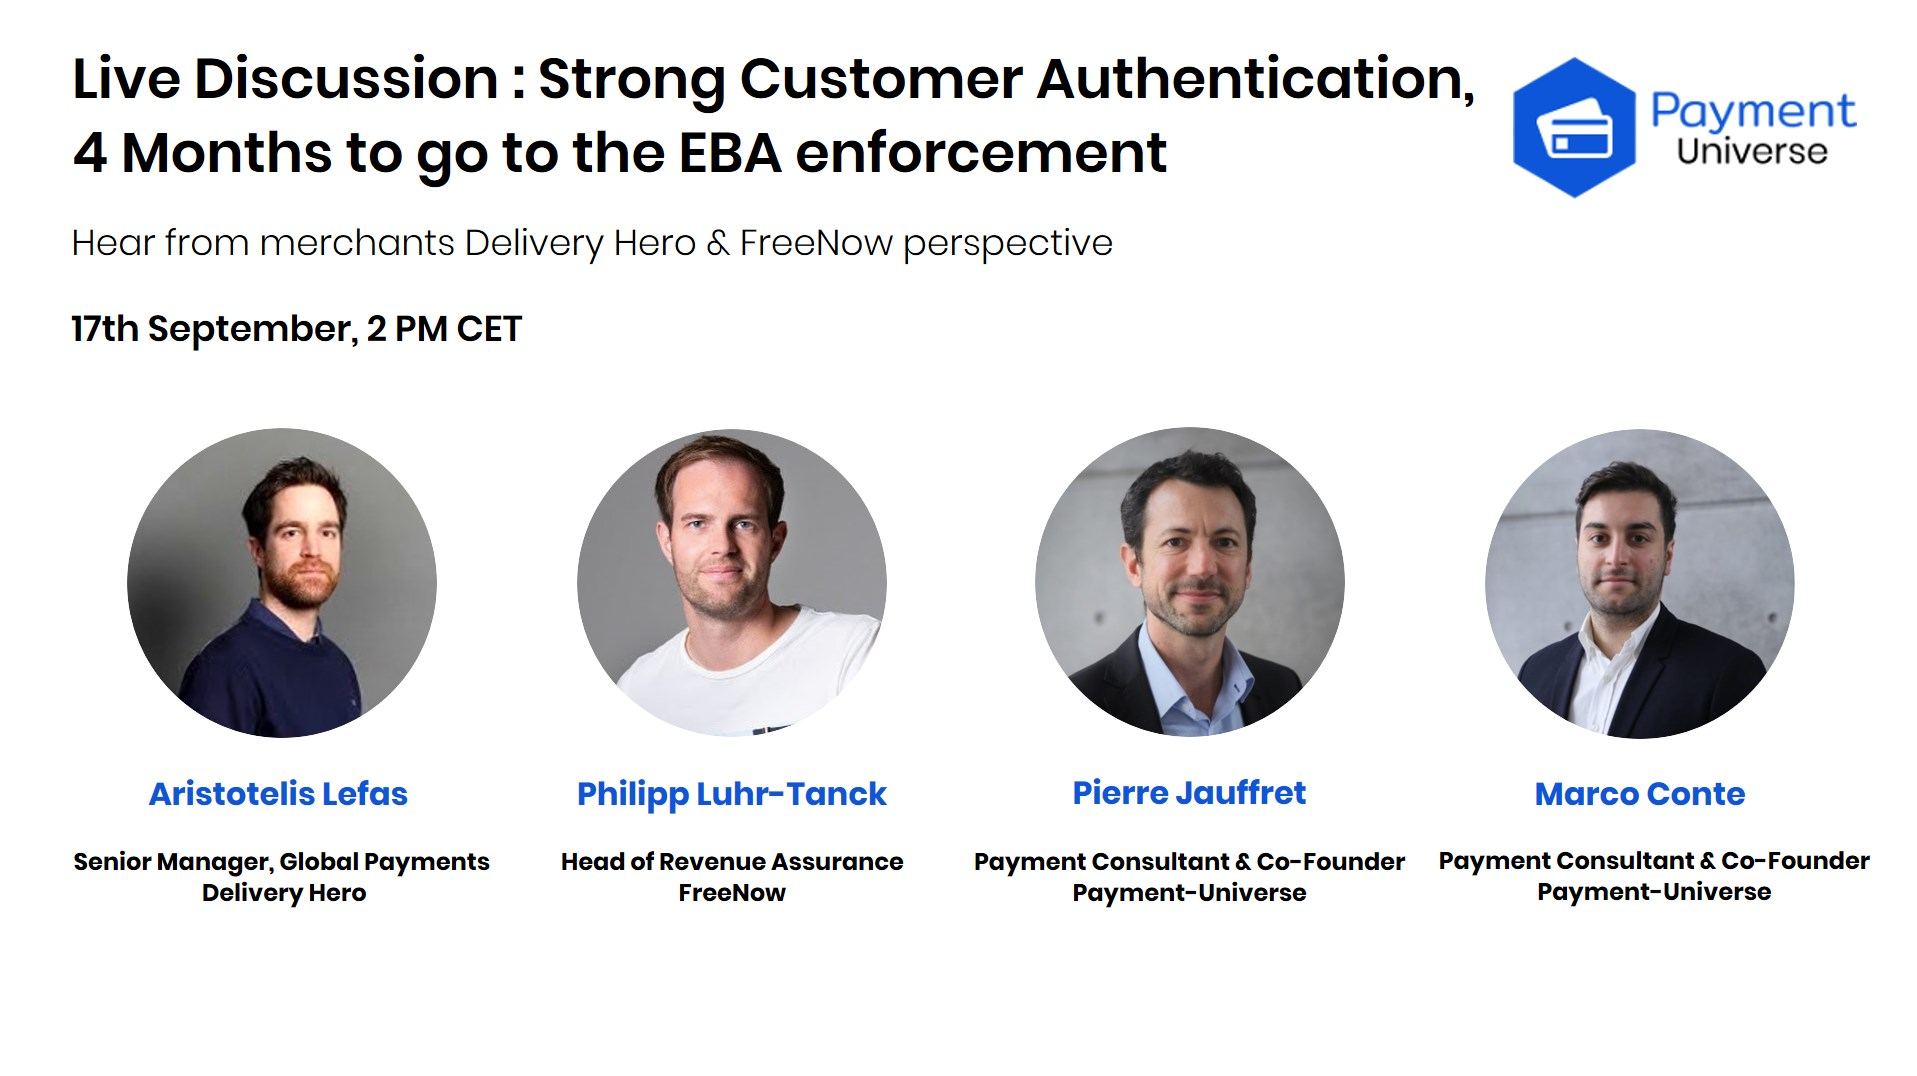 PSD2 Live webinar with Delivery Hero and Free Now. Payment-Universe